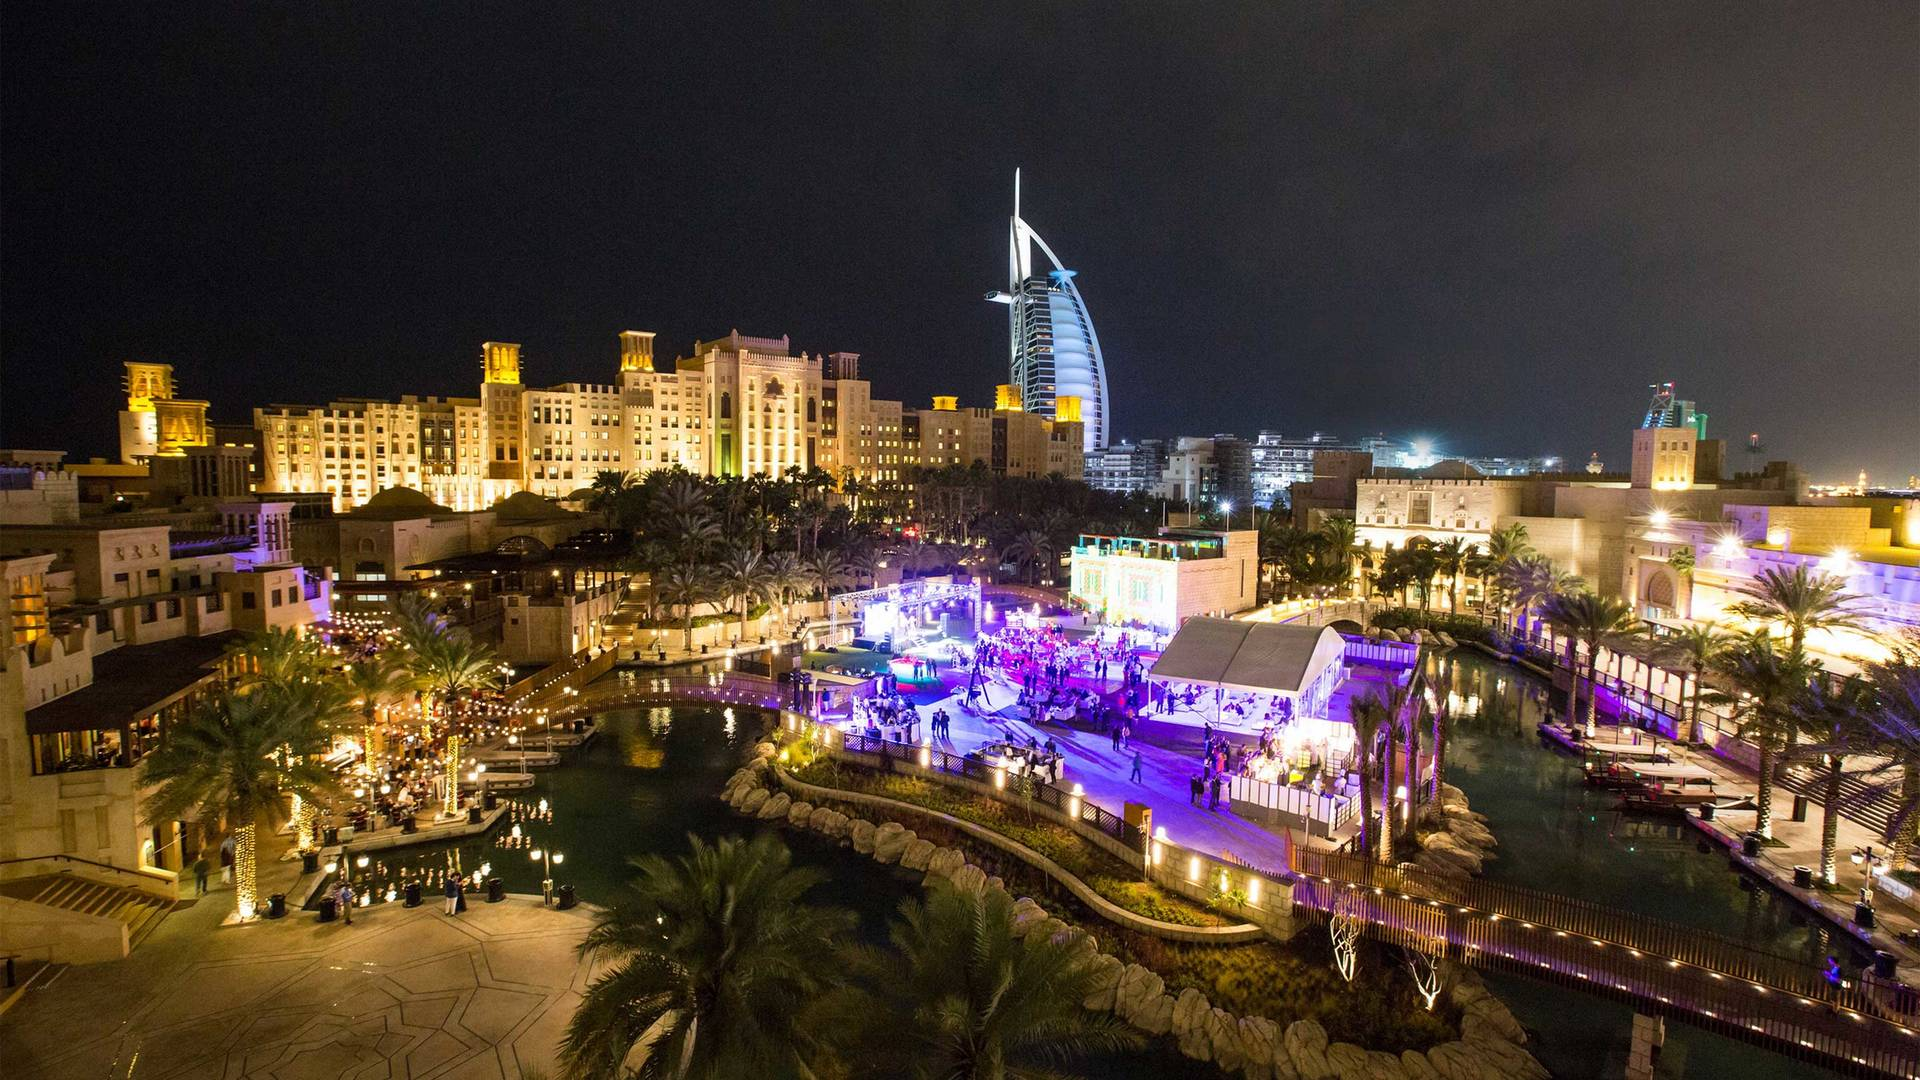 16-9 Hero---Madinat-Jumeirah---Fort-Island---night-panorama